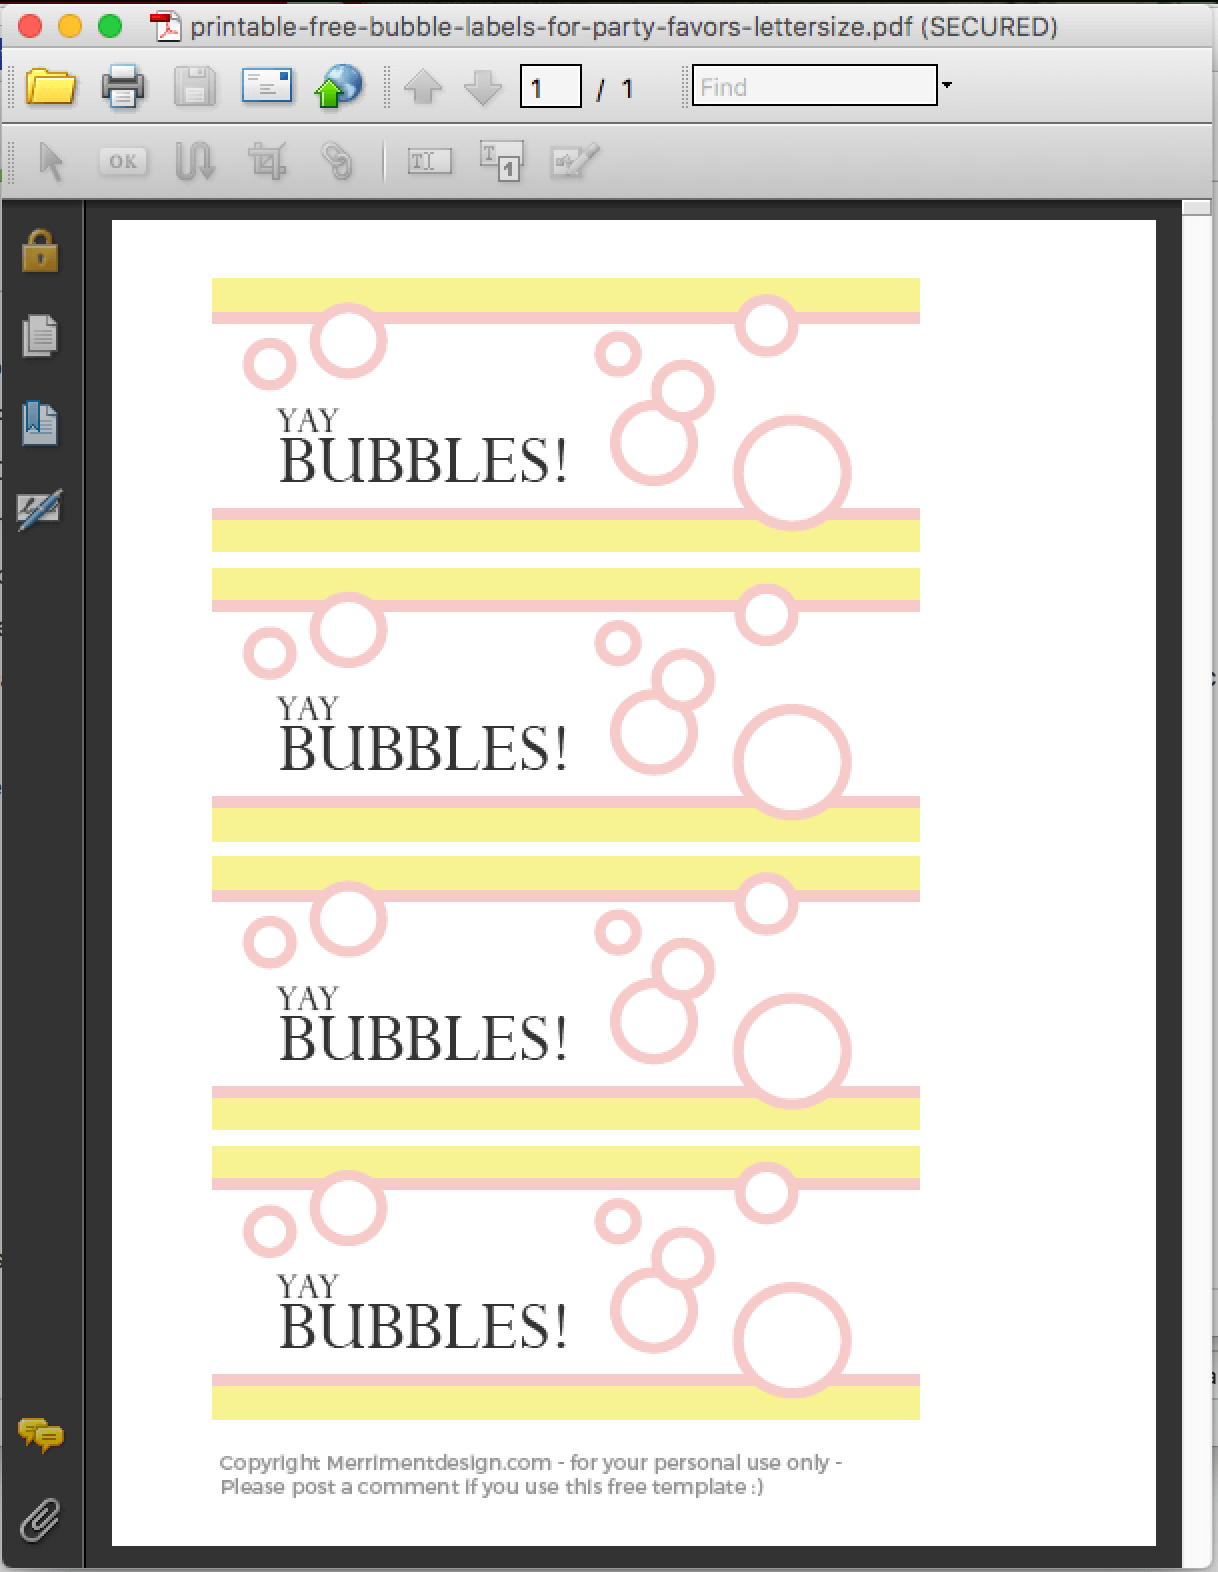 Printable Free Bubble Labels For Party Favors - Merriment Design - Free Printable Gift Tags For Bubbles